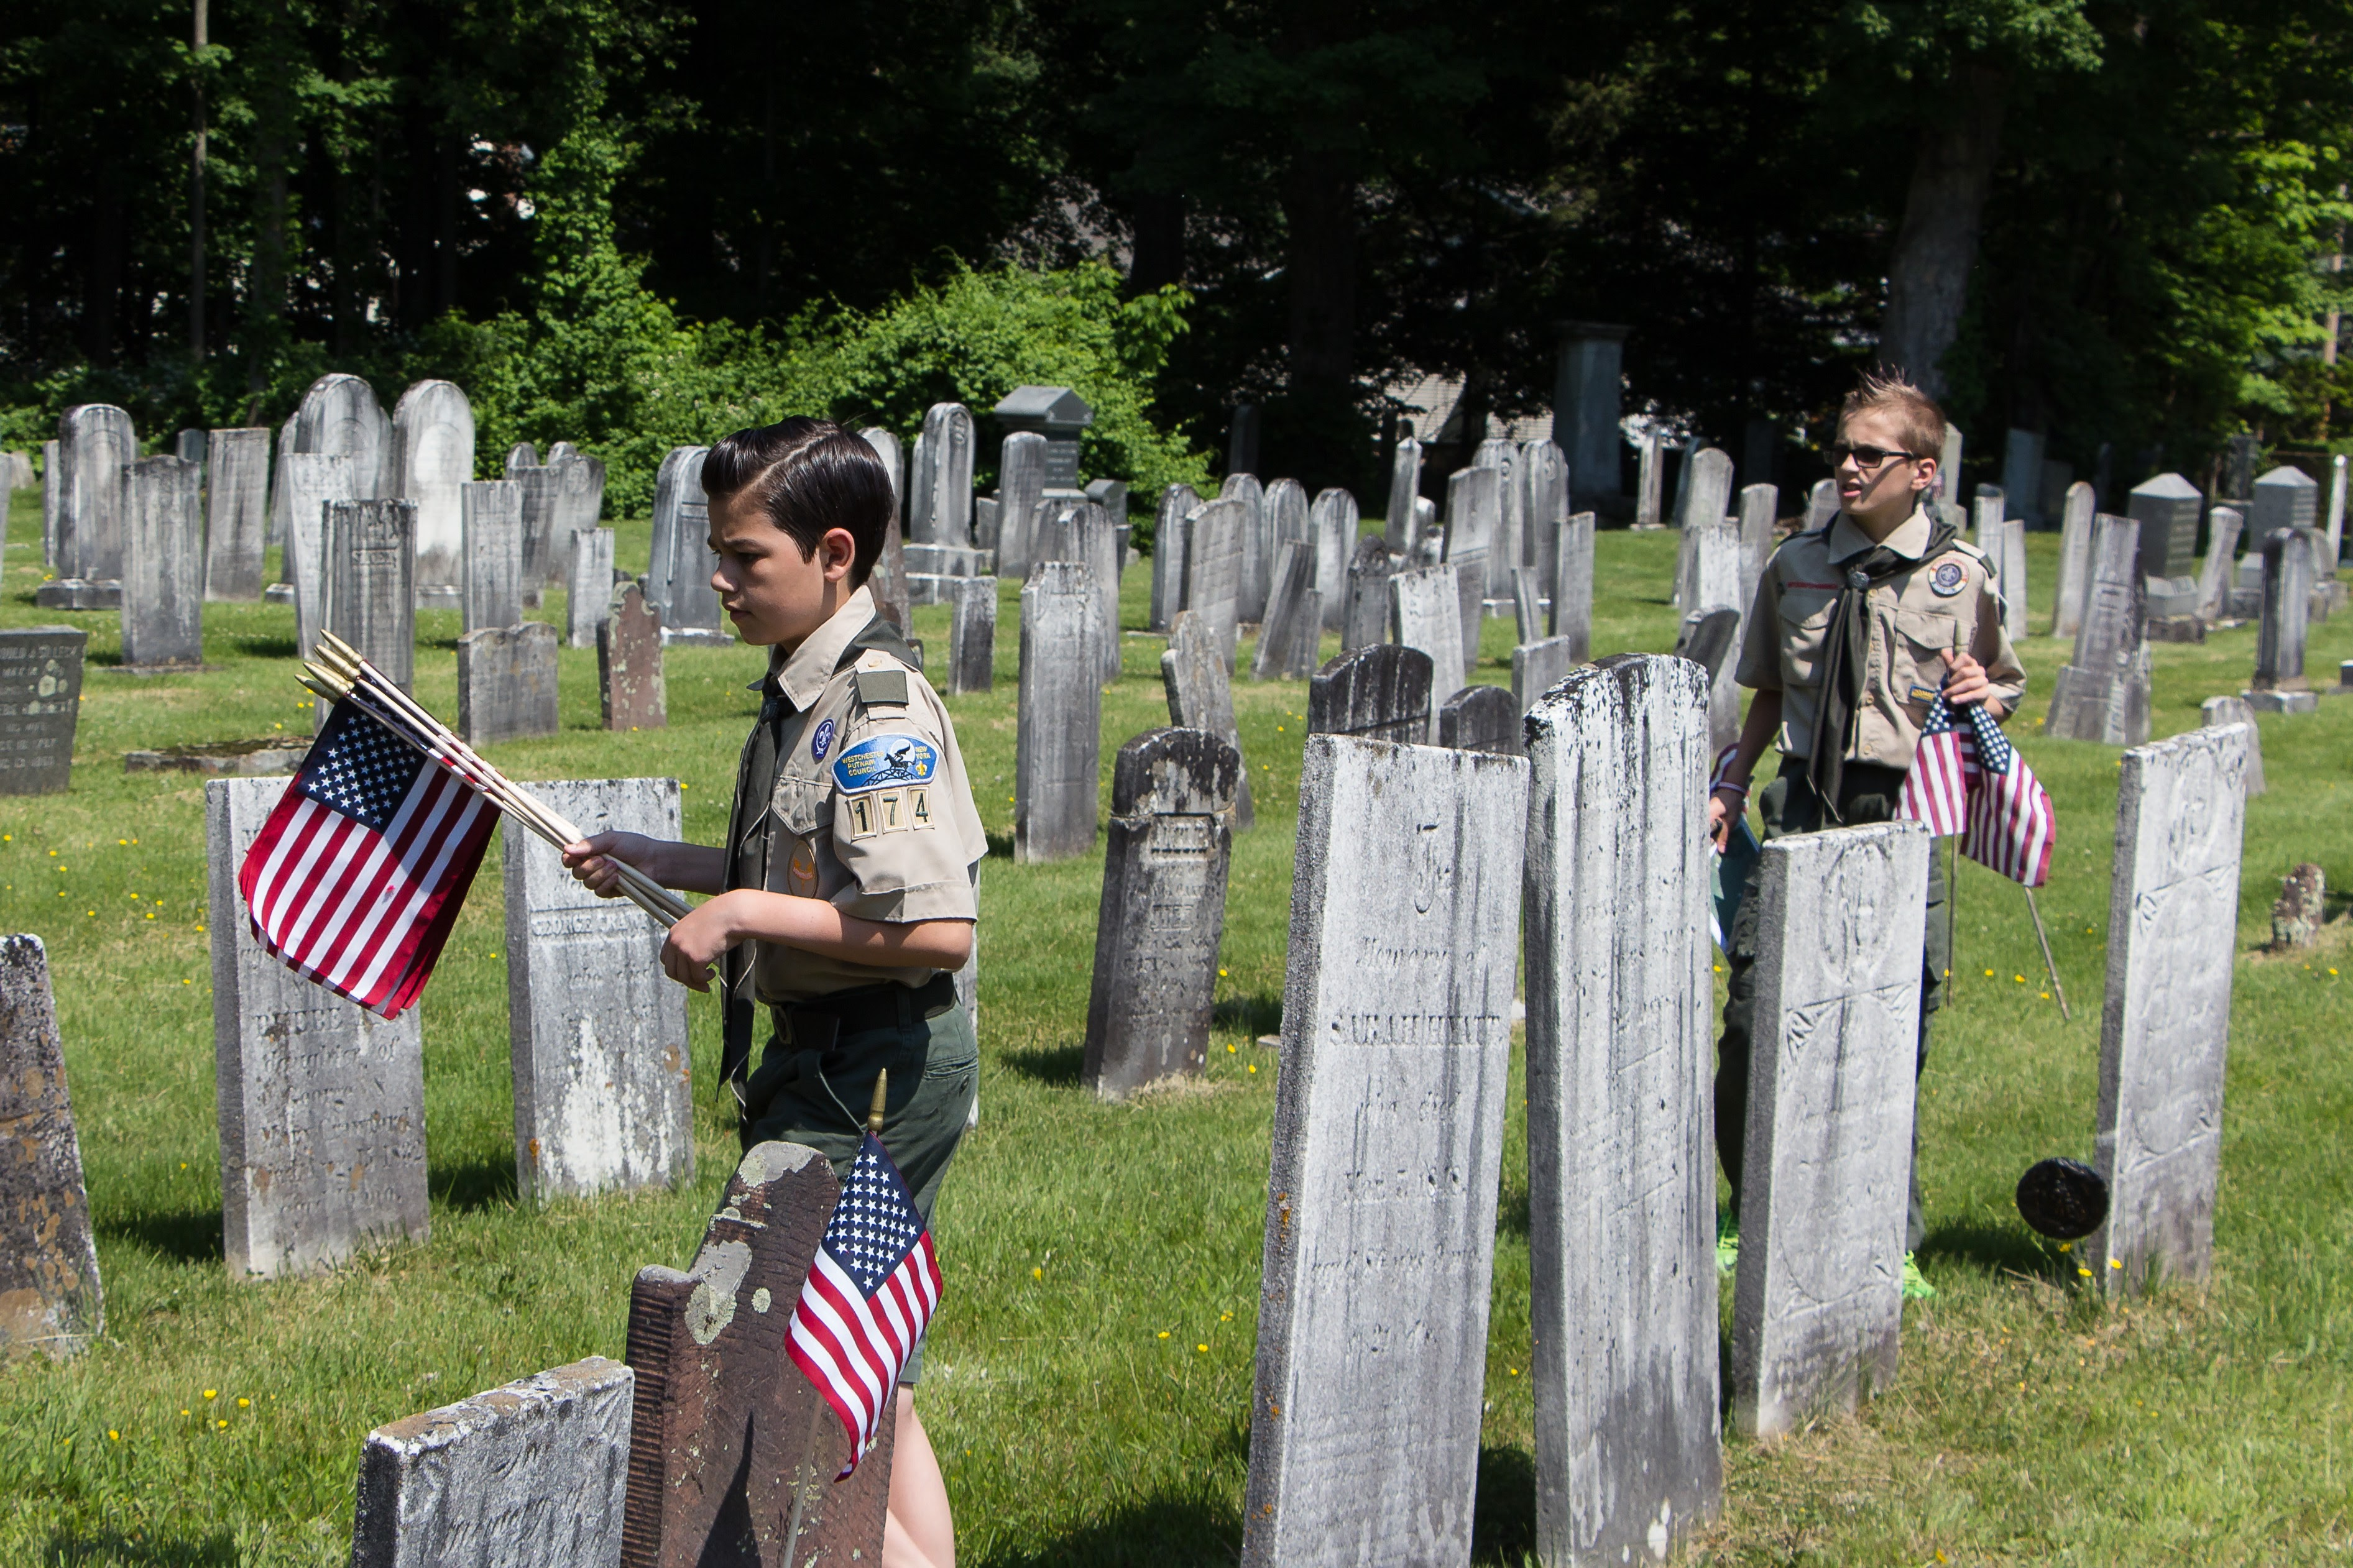 3139fcac581089e158ac_dfc325416c92cfecd01c_20160528_Boy_Scouts_Memorial_Day_Flag_Settng_004.jpg